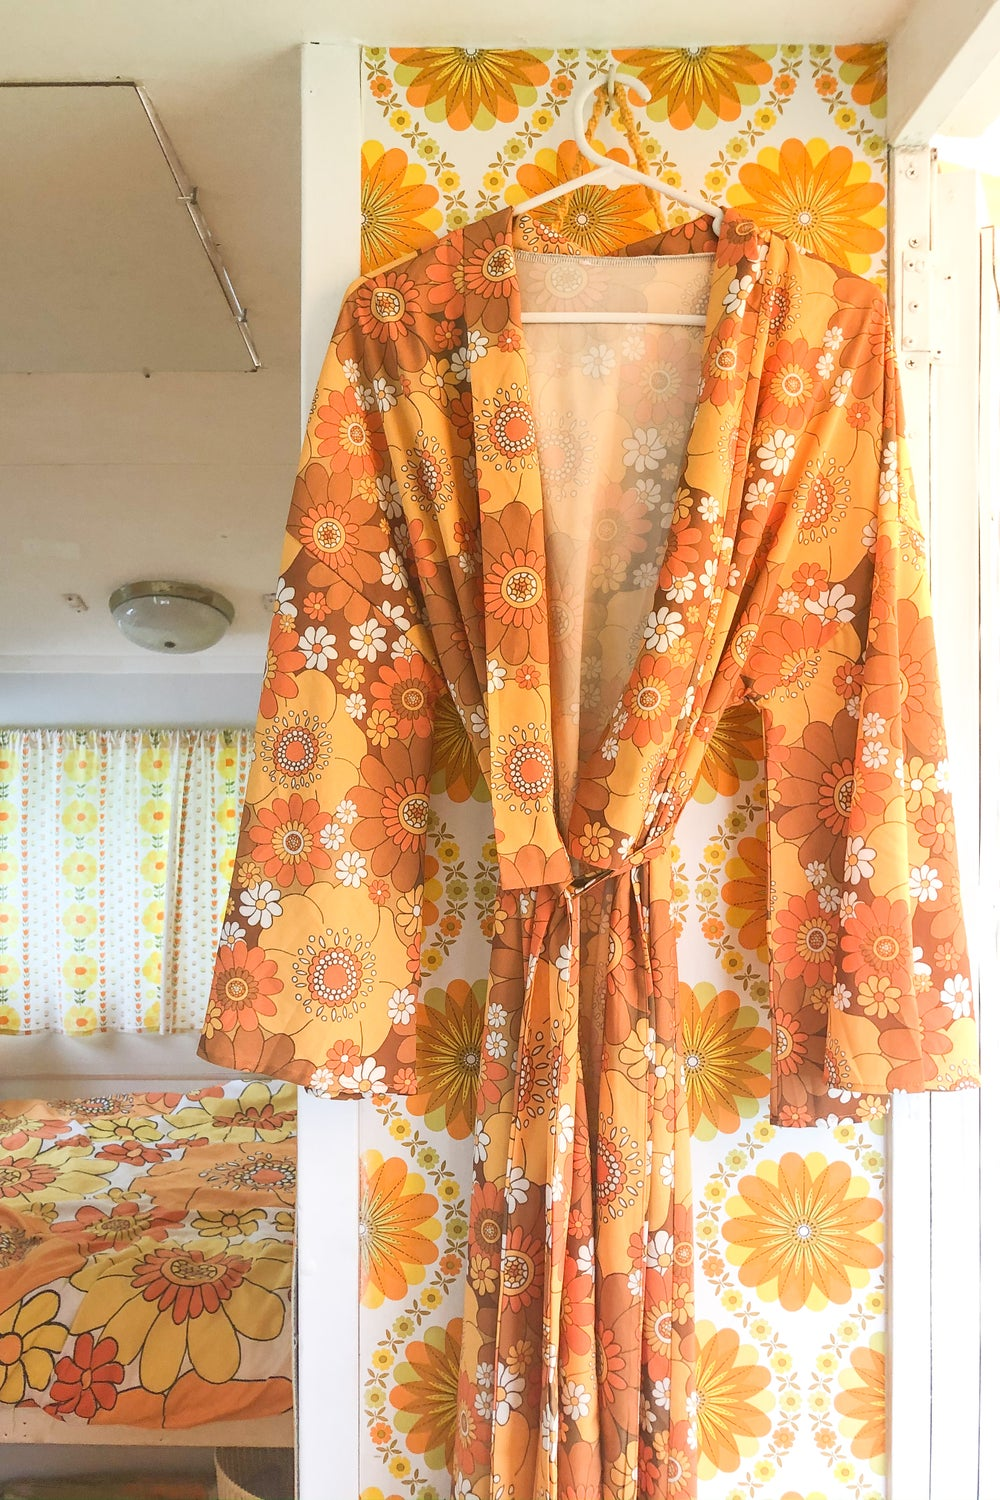 Feelin' groovy long length robe in Pushing daisies Orange and brown